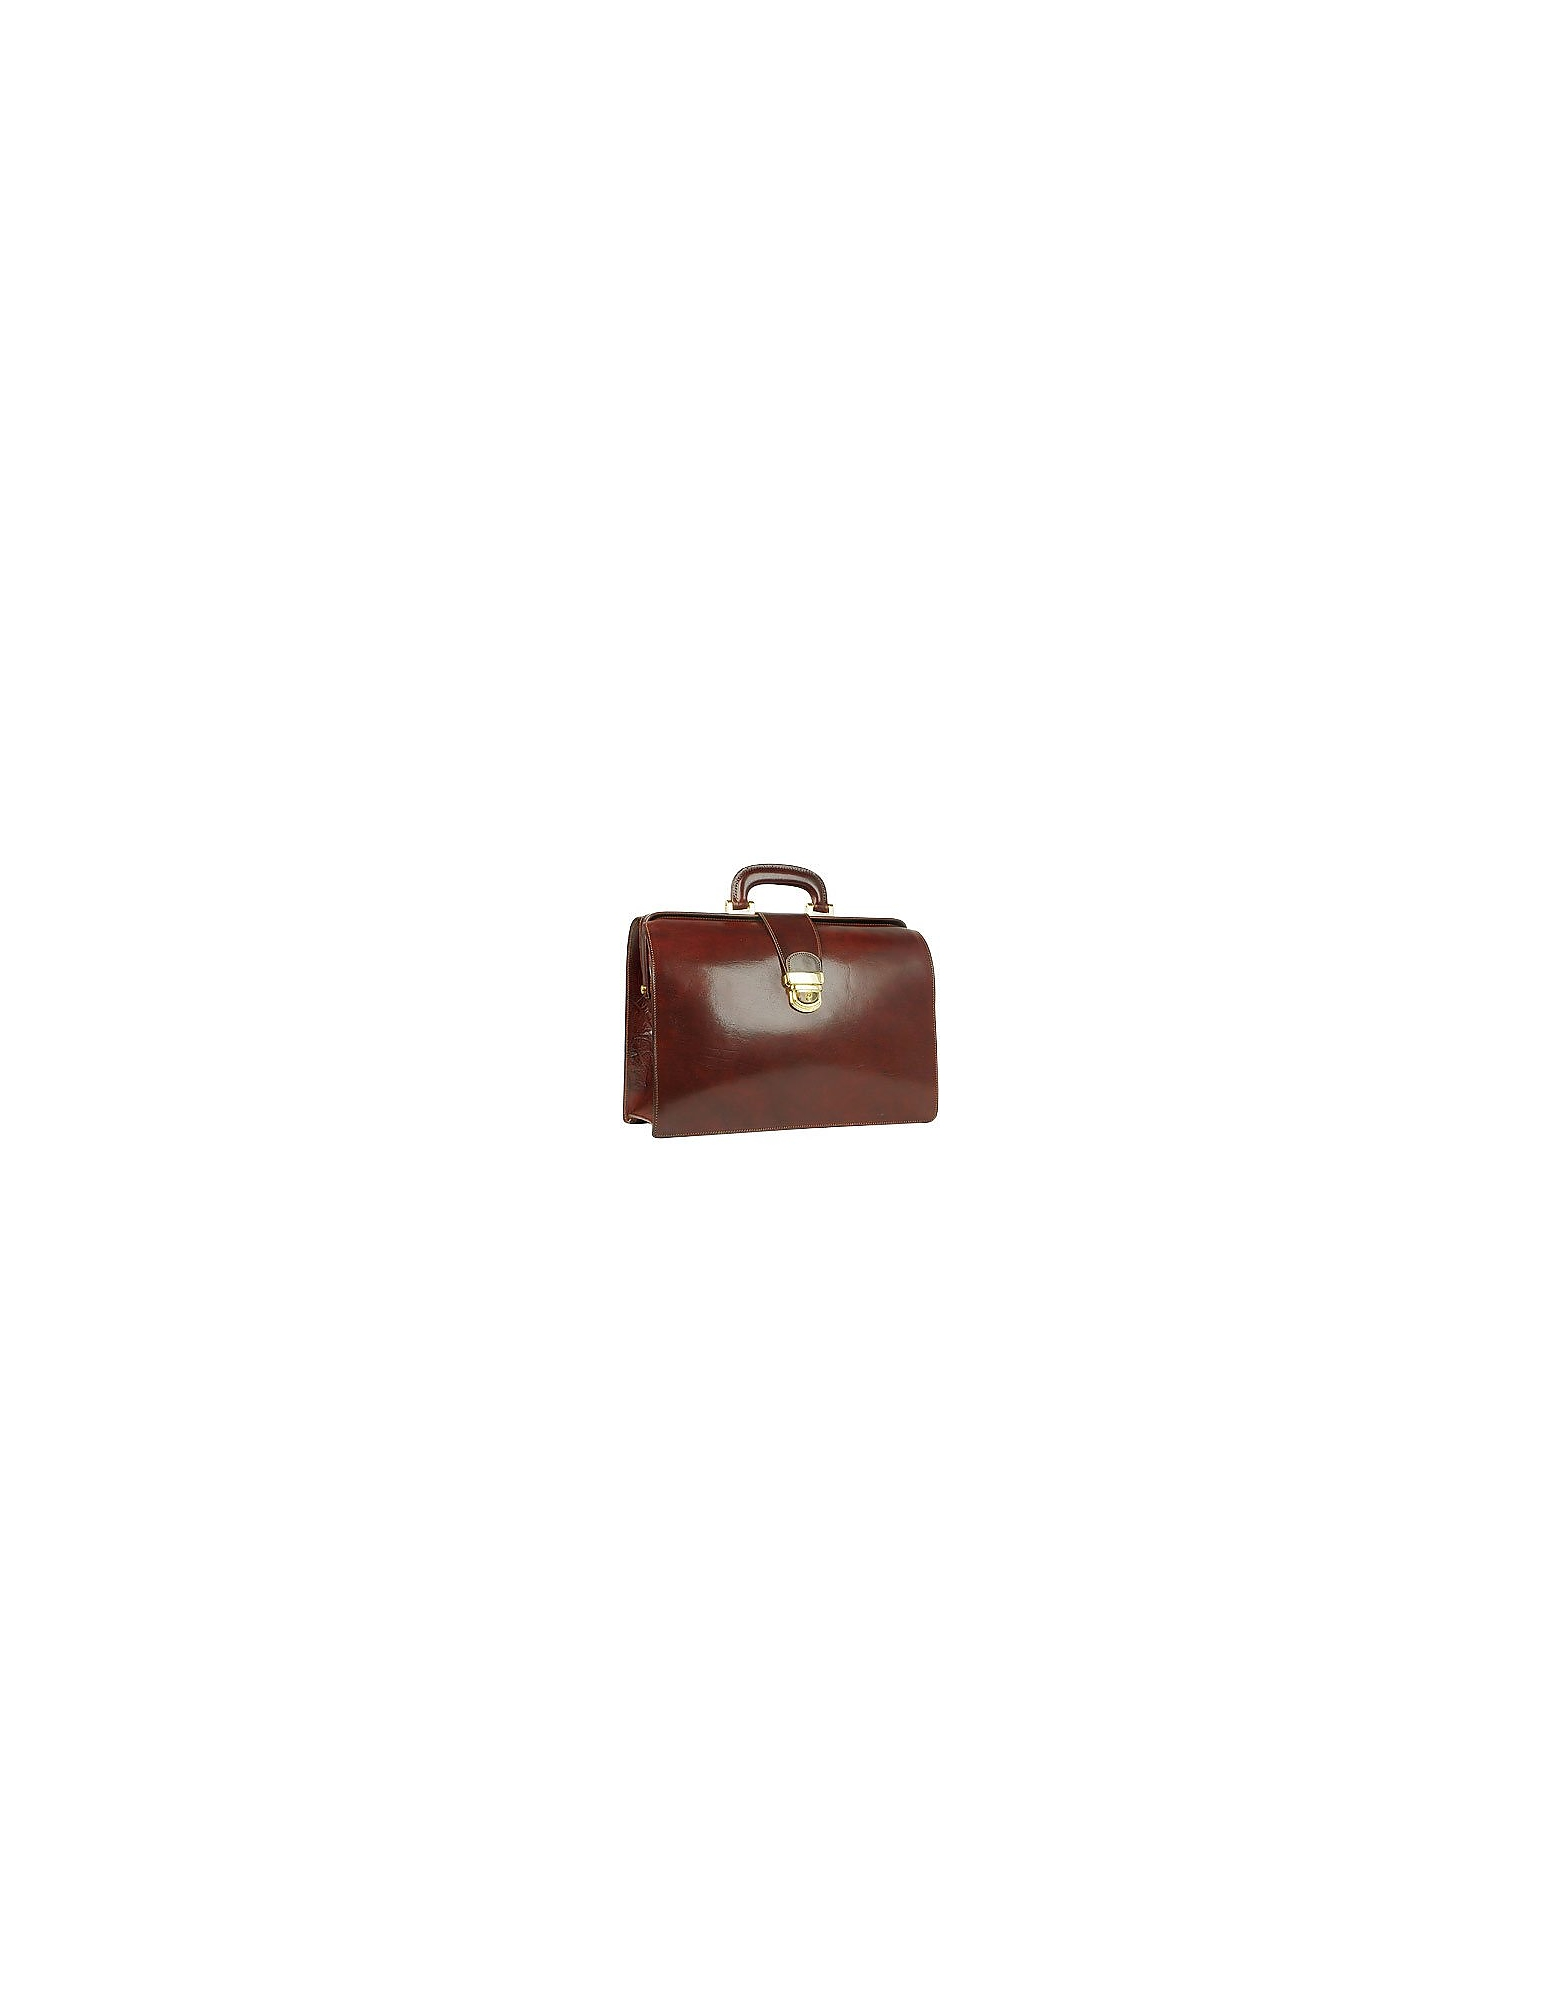 Forzieri Briefcases, Dark Brown Italian Leather Buckled Medium Doctor Bag